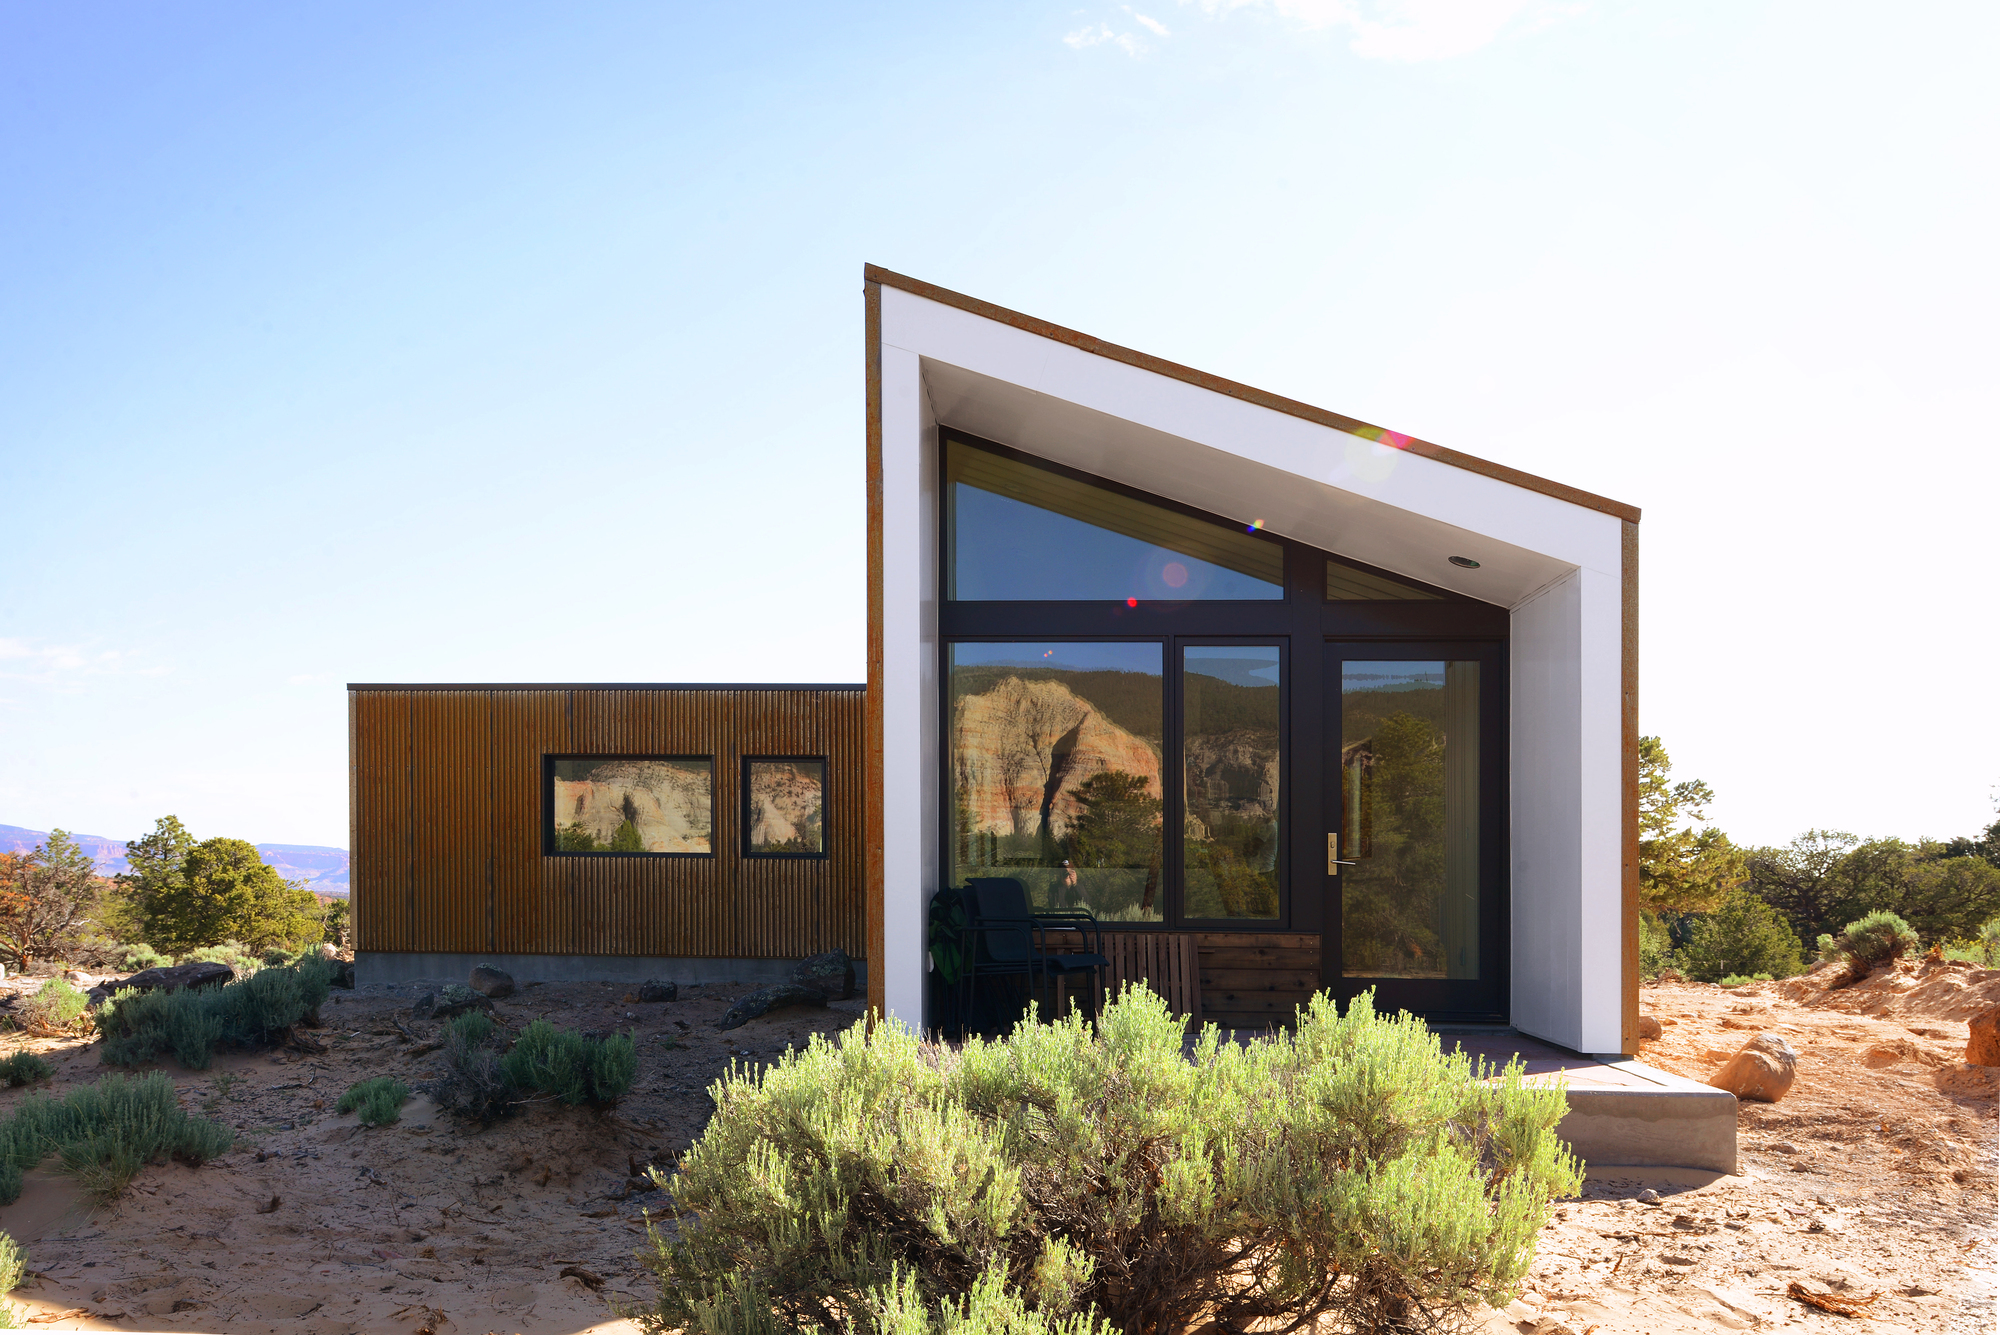 5522f812e58ecea9f800003f_capitol-reef-desert-dwelling-imbue-design_05_guest_house_rear_elevation